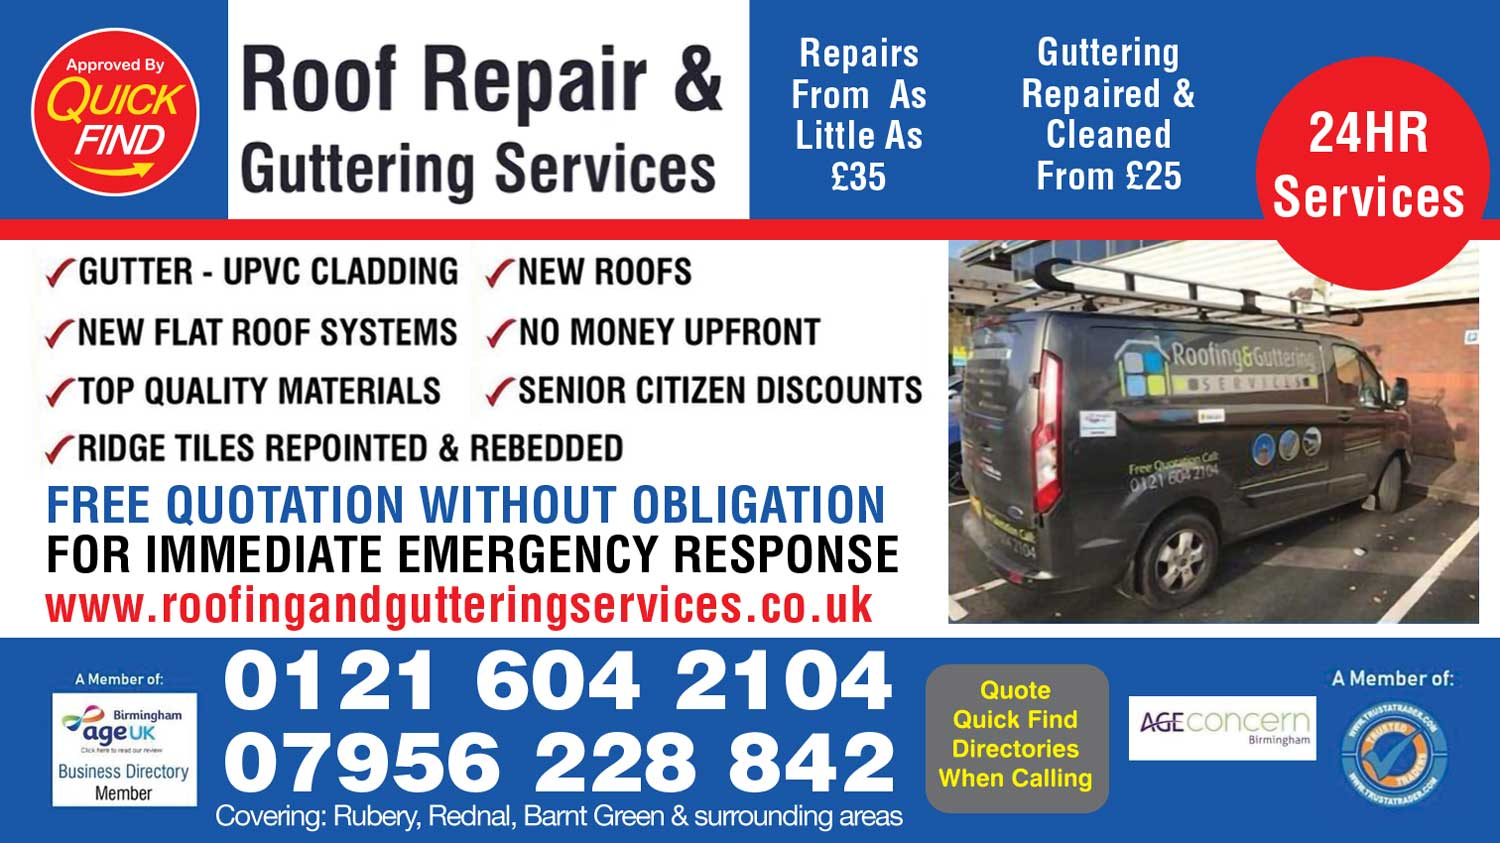 Roof Repair & Guttering Services